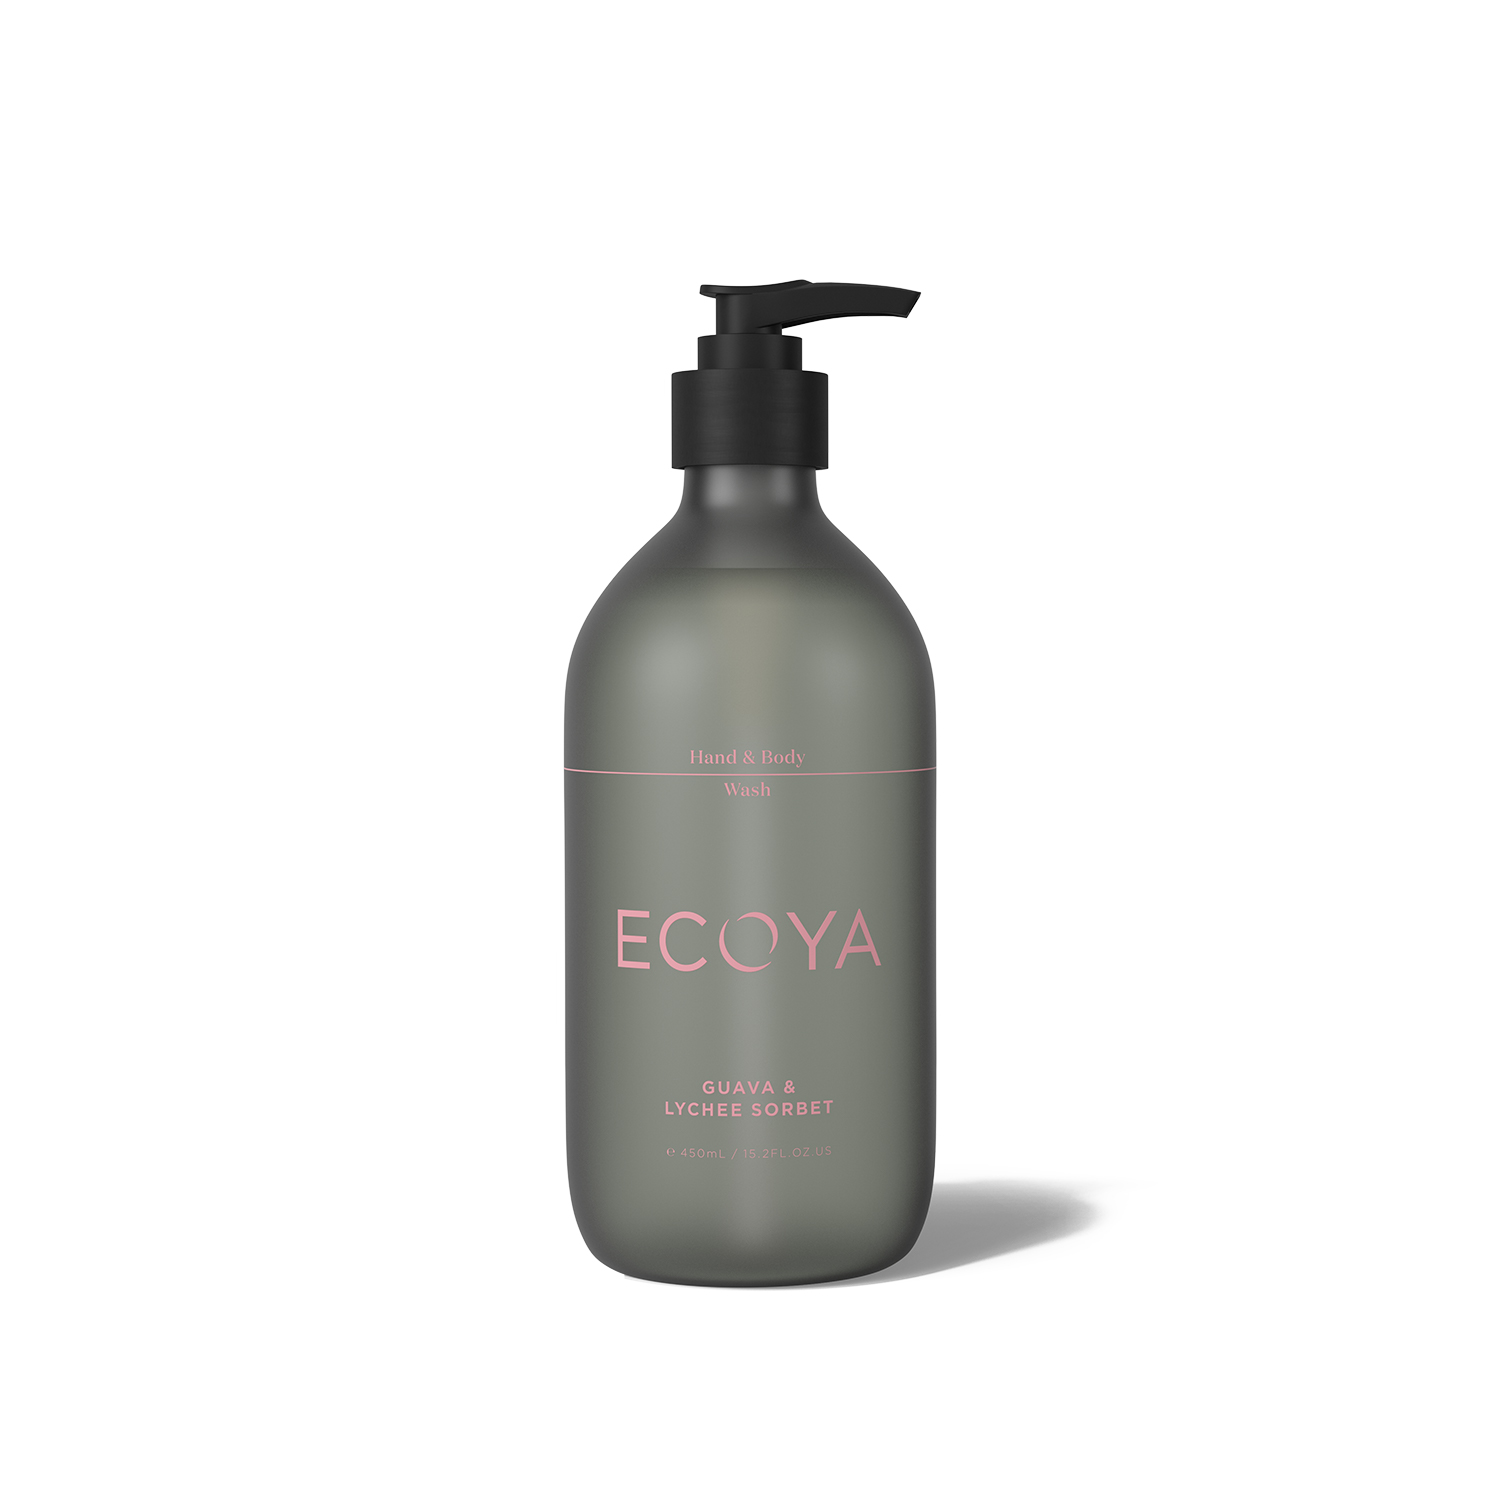 Ecoya Guava and Lychee Hand and Body Wash 450ml